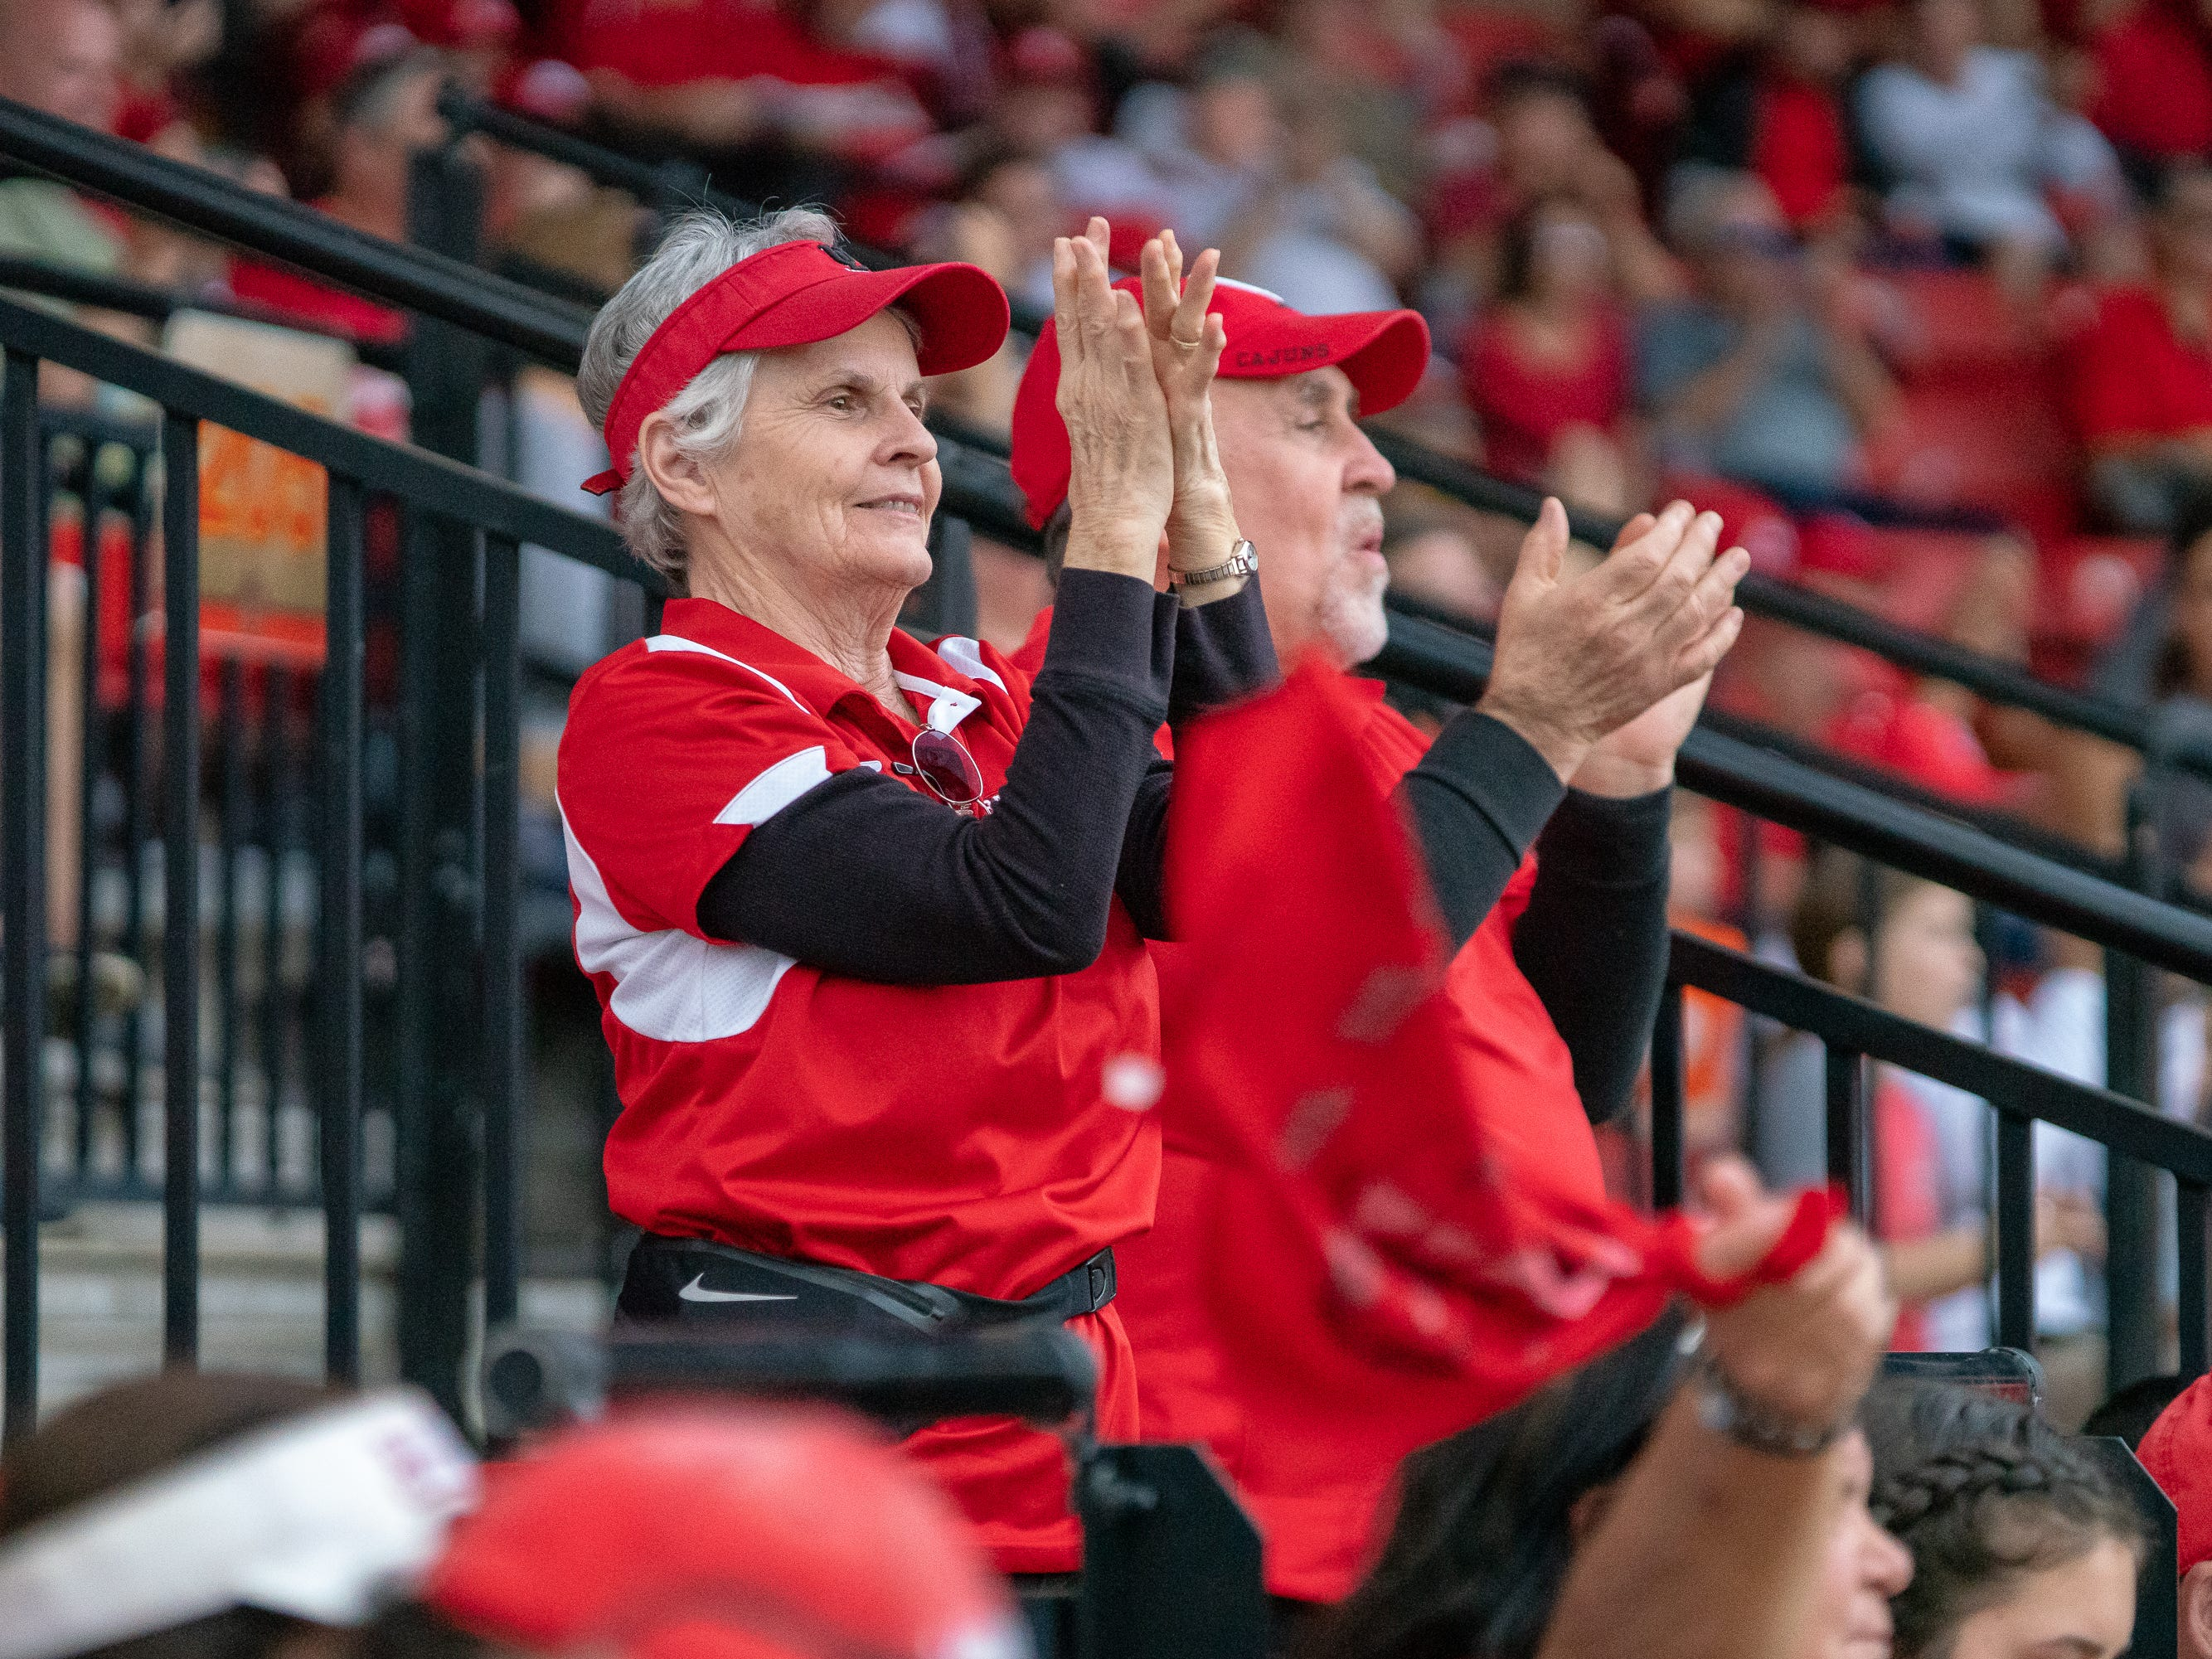 Fans cheering on UL in the stands as the Ragin' Cajuns play against the California Golden Bears at Lamson Park on February 11, 2019.